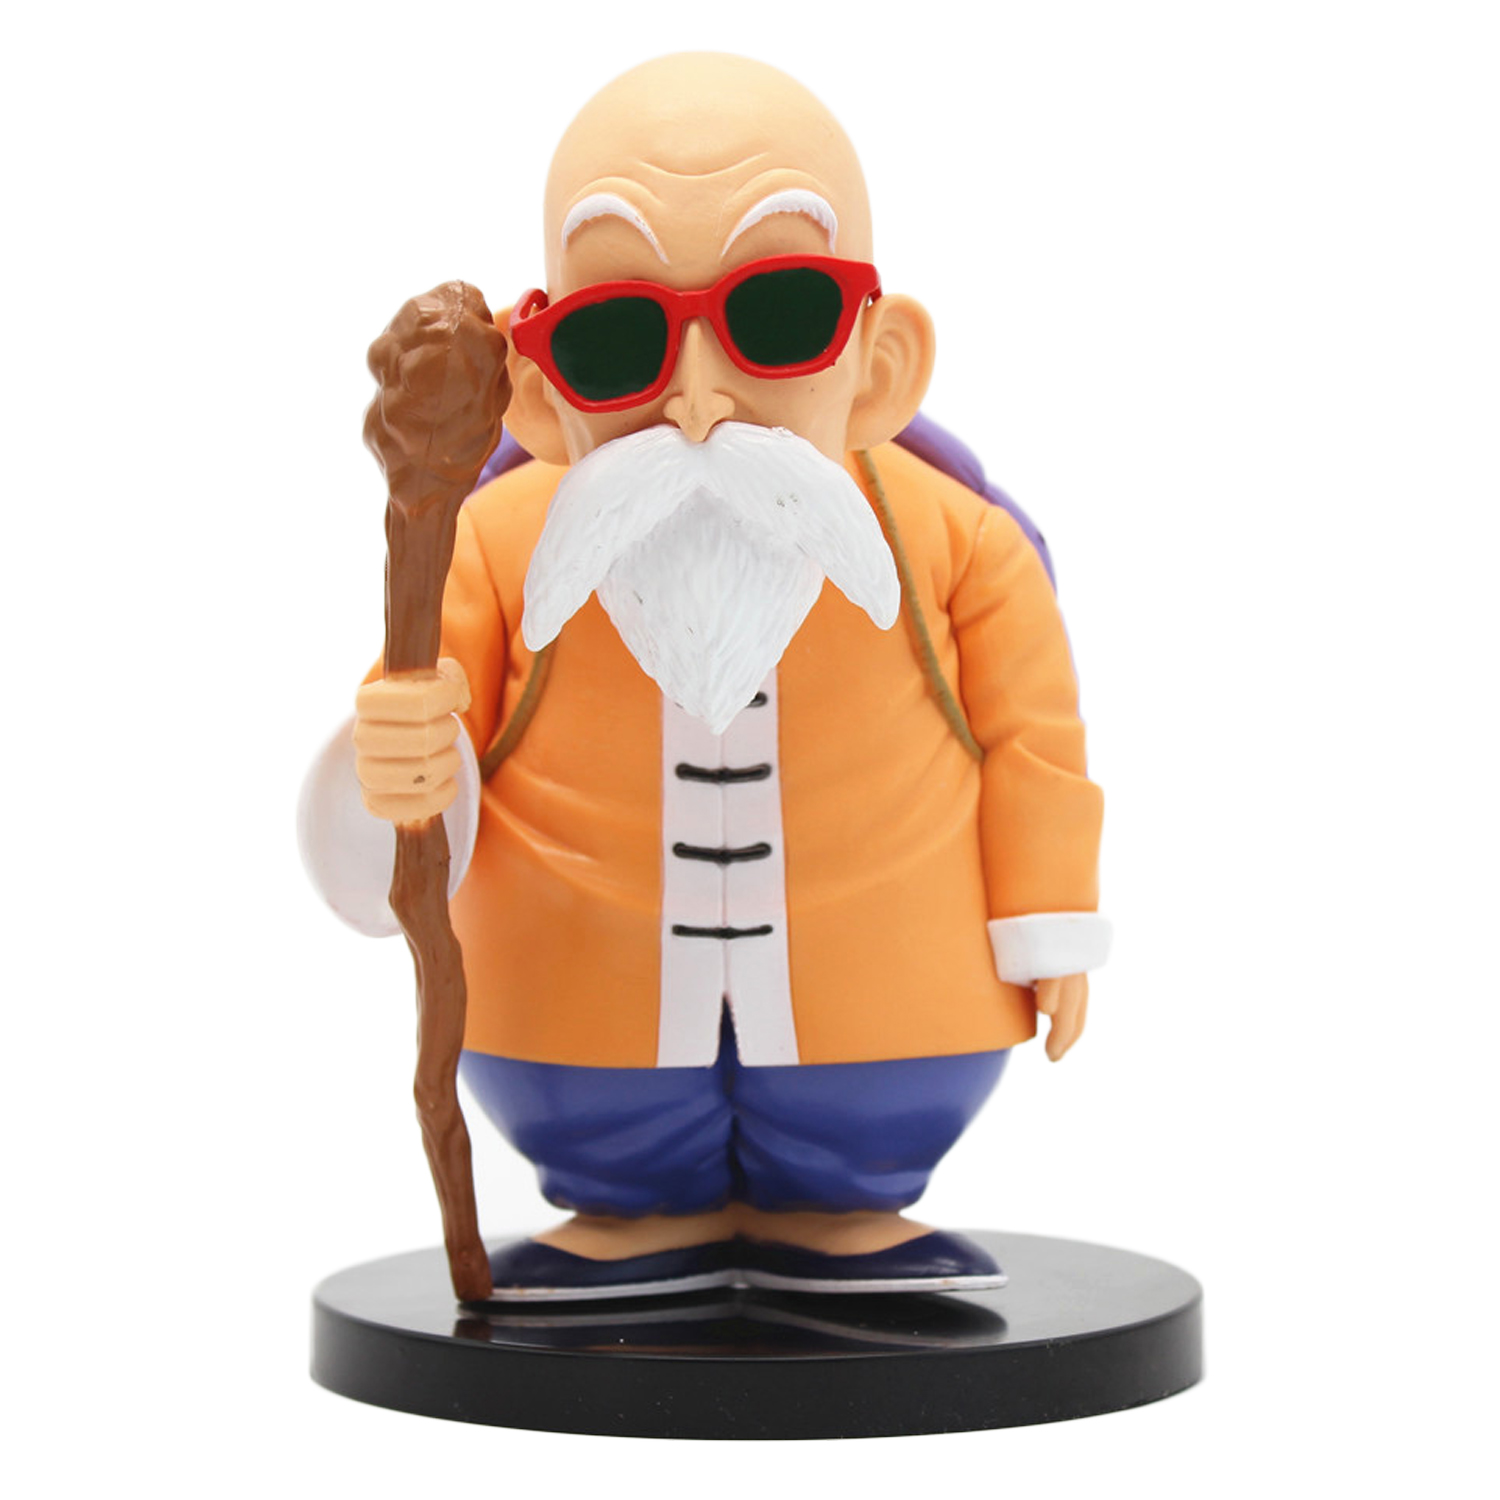 Chanycore 16CM Anime Dragon BALL Z Super Figure Master Roshi Krillin Oolong Super Saiyan Son goku Action Figure PVC Model Toy anime dragon ball figuarts zero super saiyan 3 gotenks pvc action figure collectible model toy 16cm kt1904